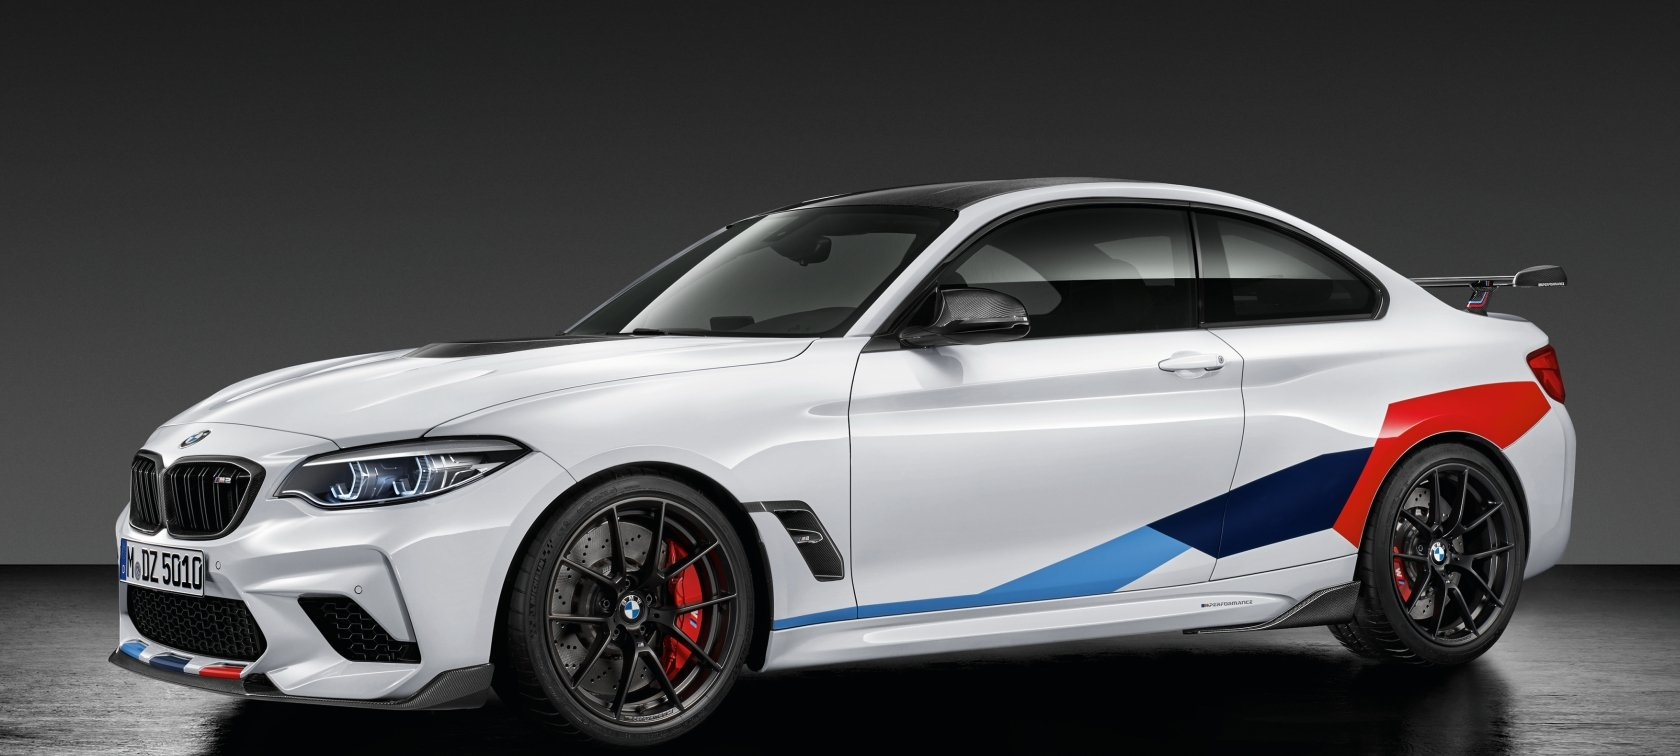 Name:  bmw-m2-competition-mpp-stage-teaser-L.jpg Views: 1740 Size:  139.6 KB